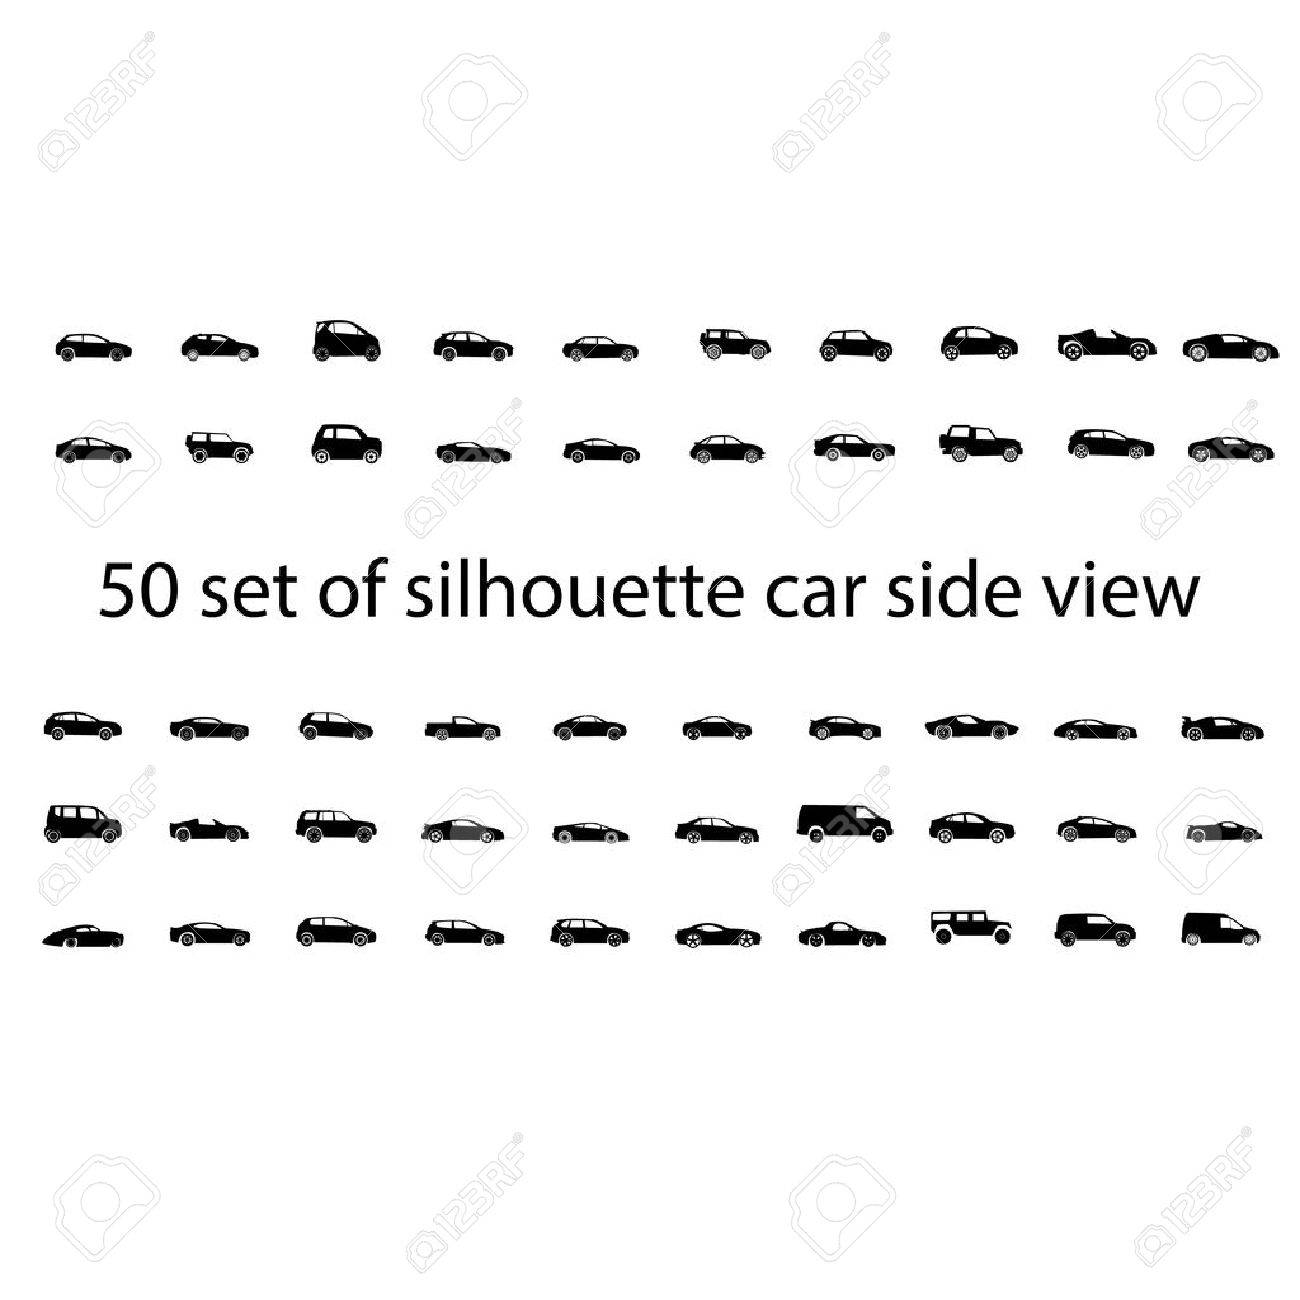 Black silhouette car side view isolated graphic vector - 21655493